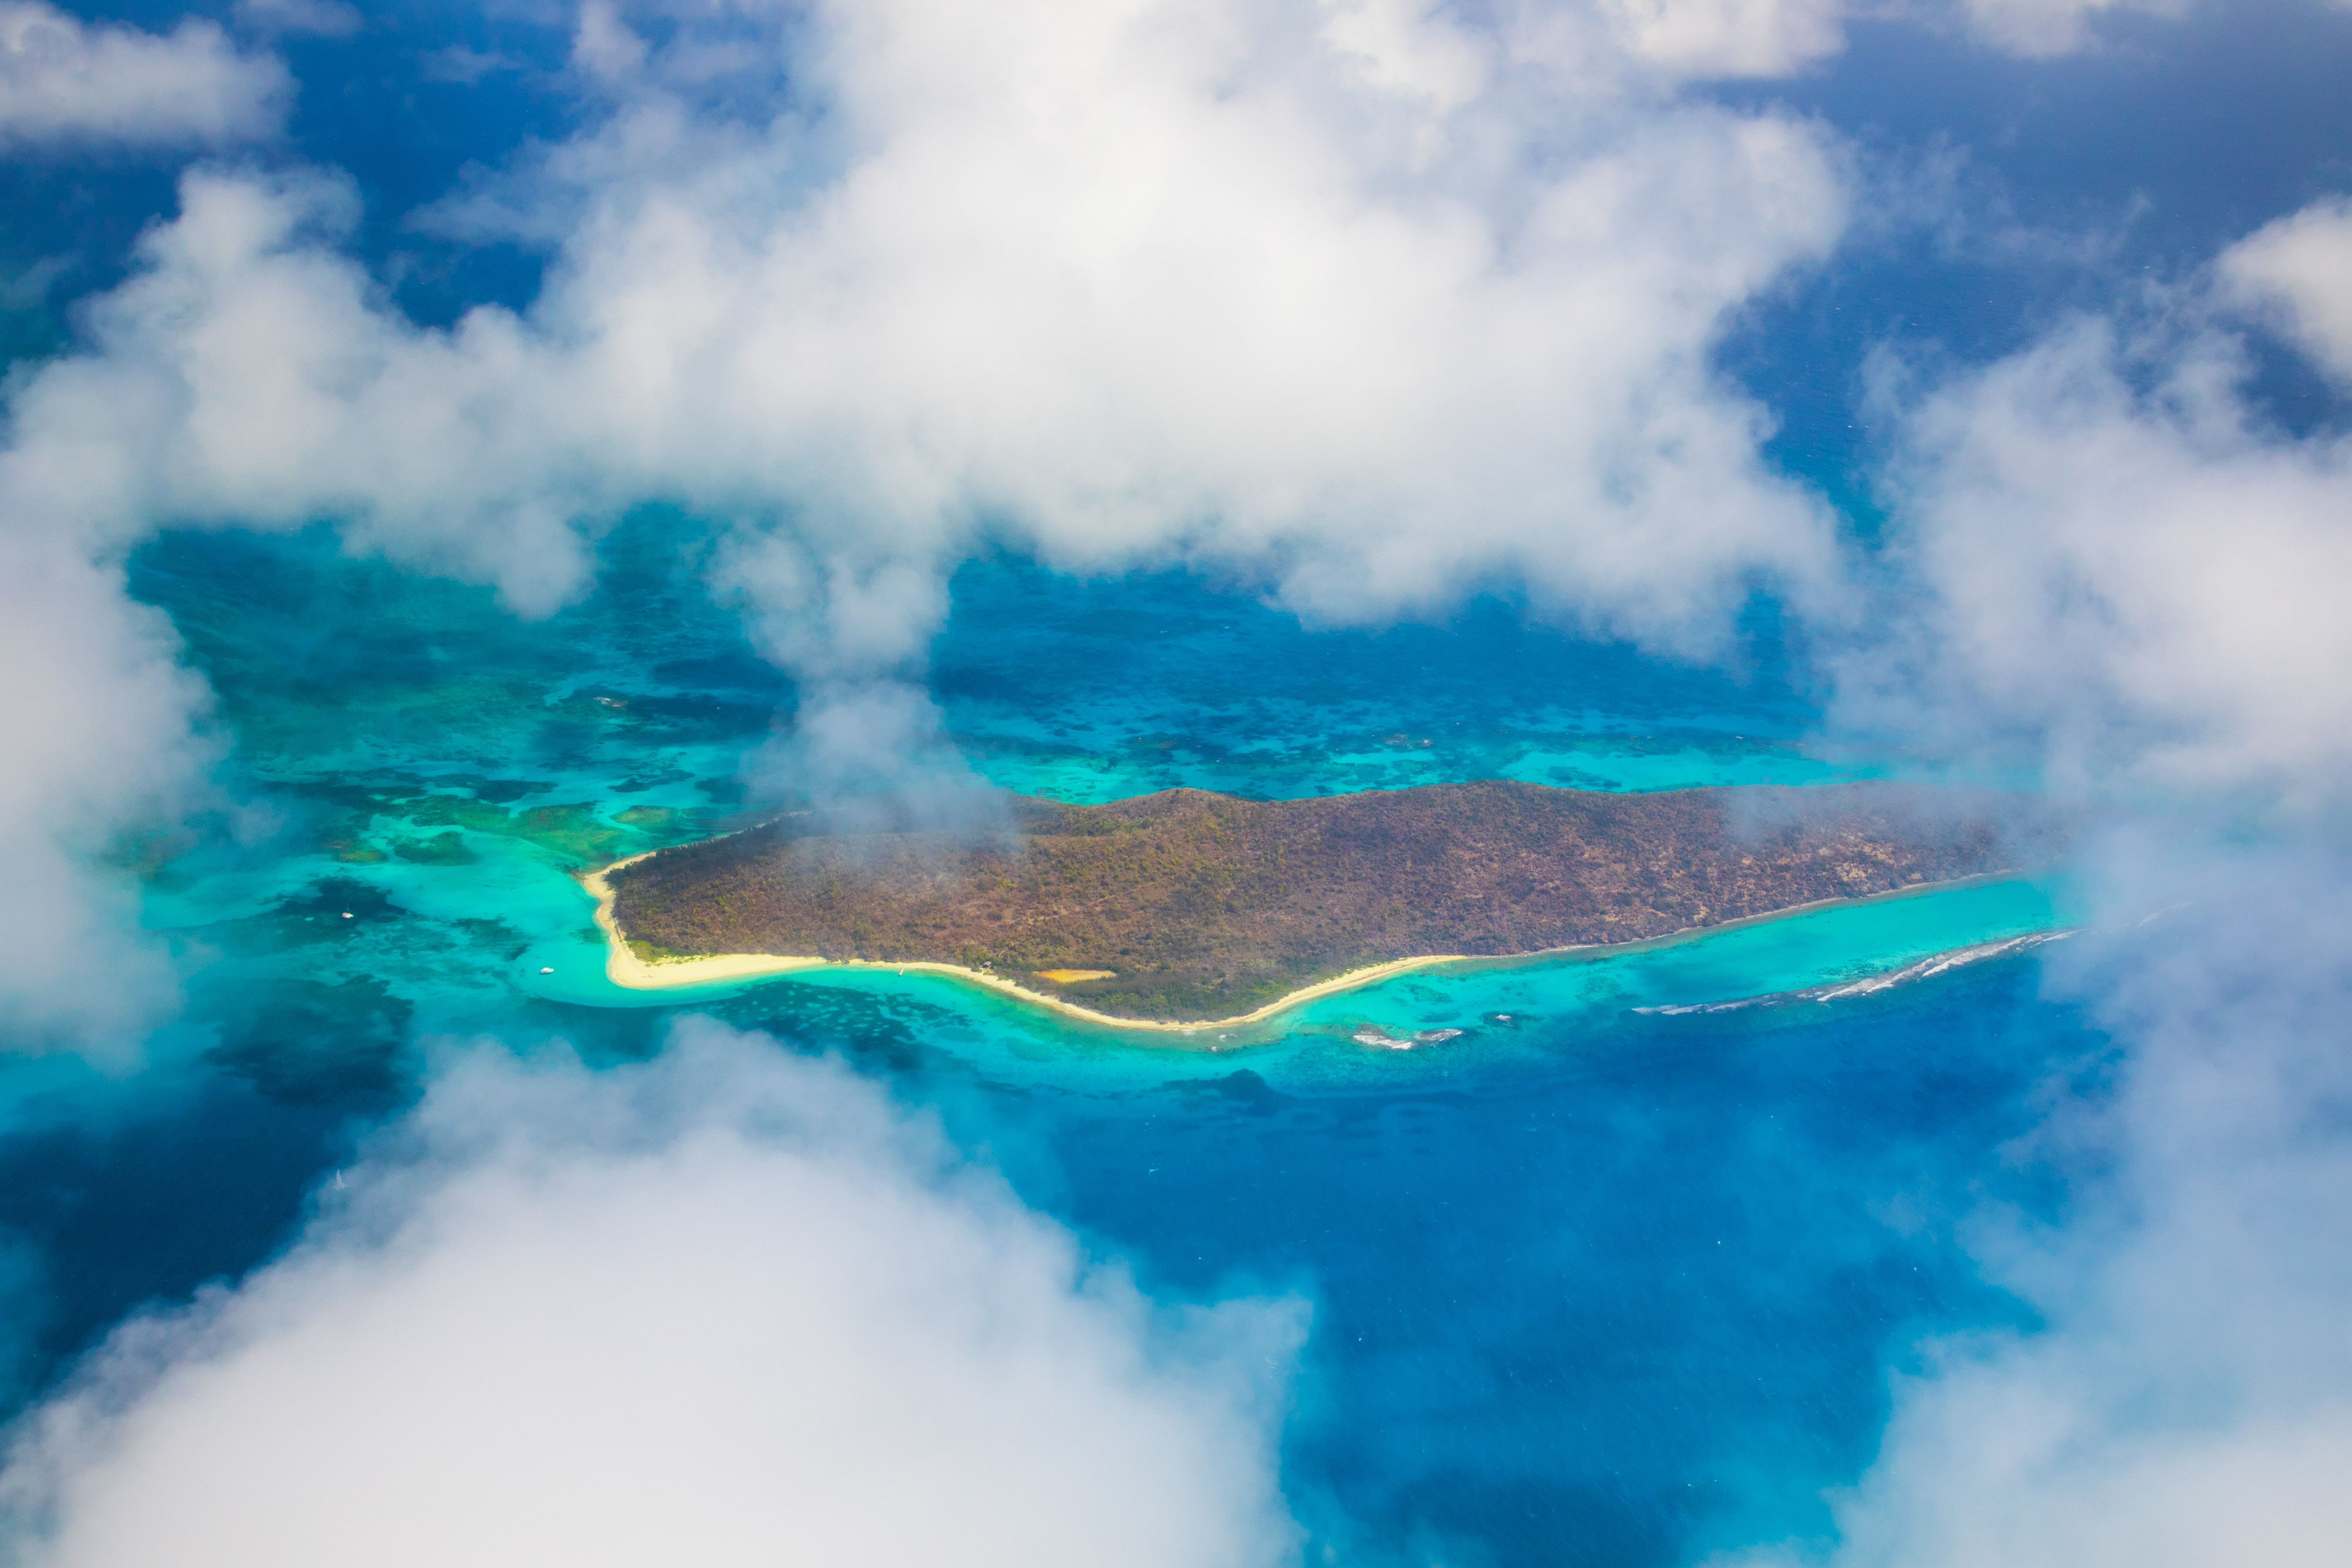 Buck Island, a U.S. National Monument, as seen out the window of the CAO aircraft as it flys over St. Croix.